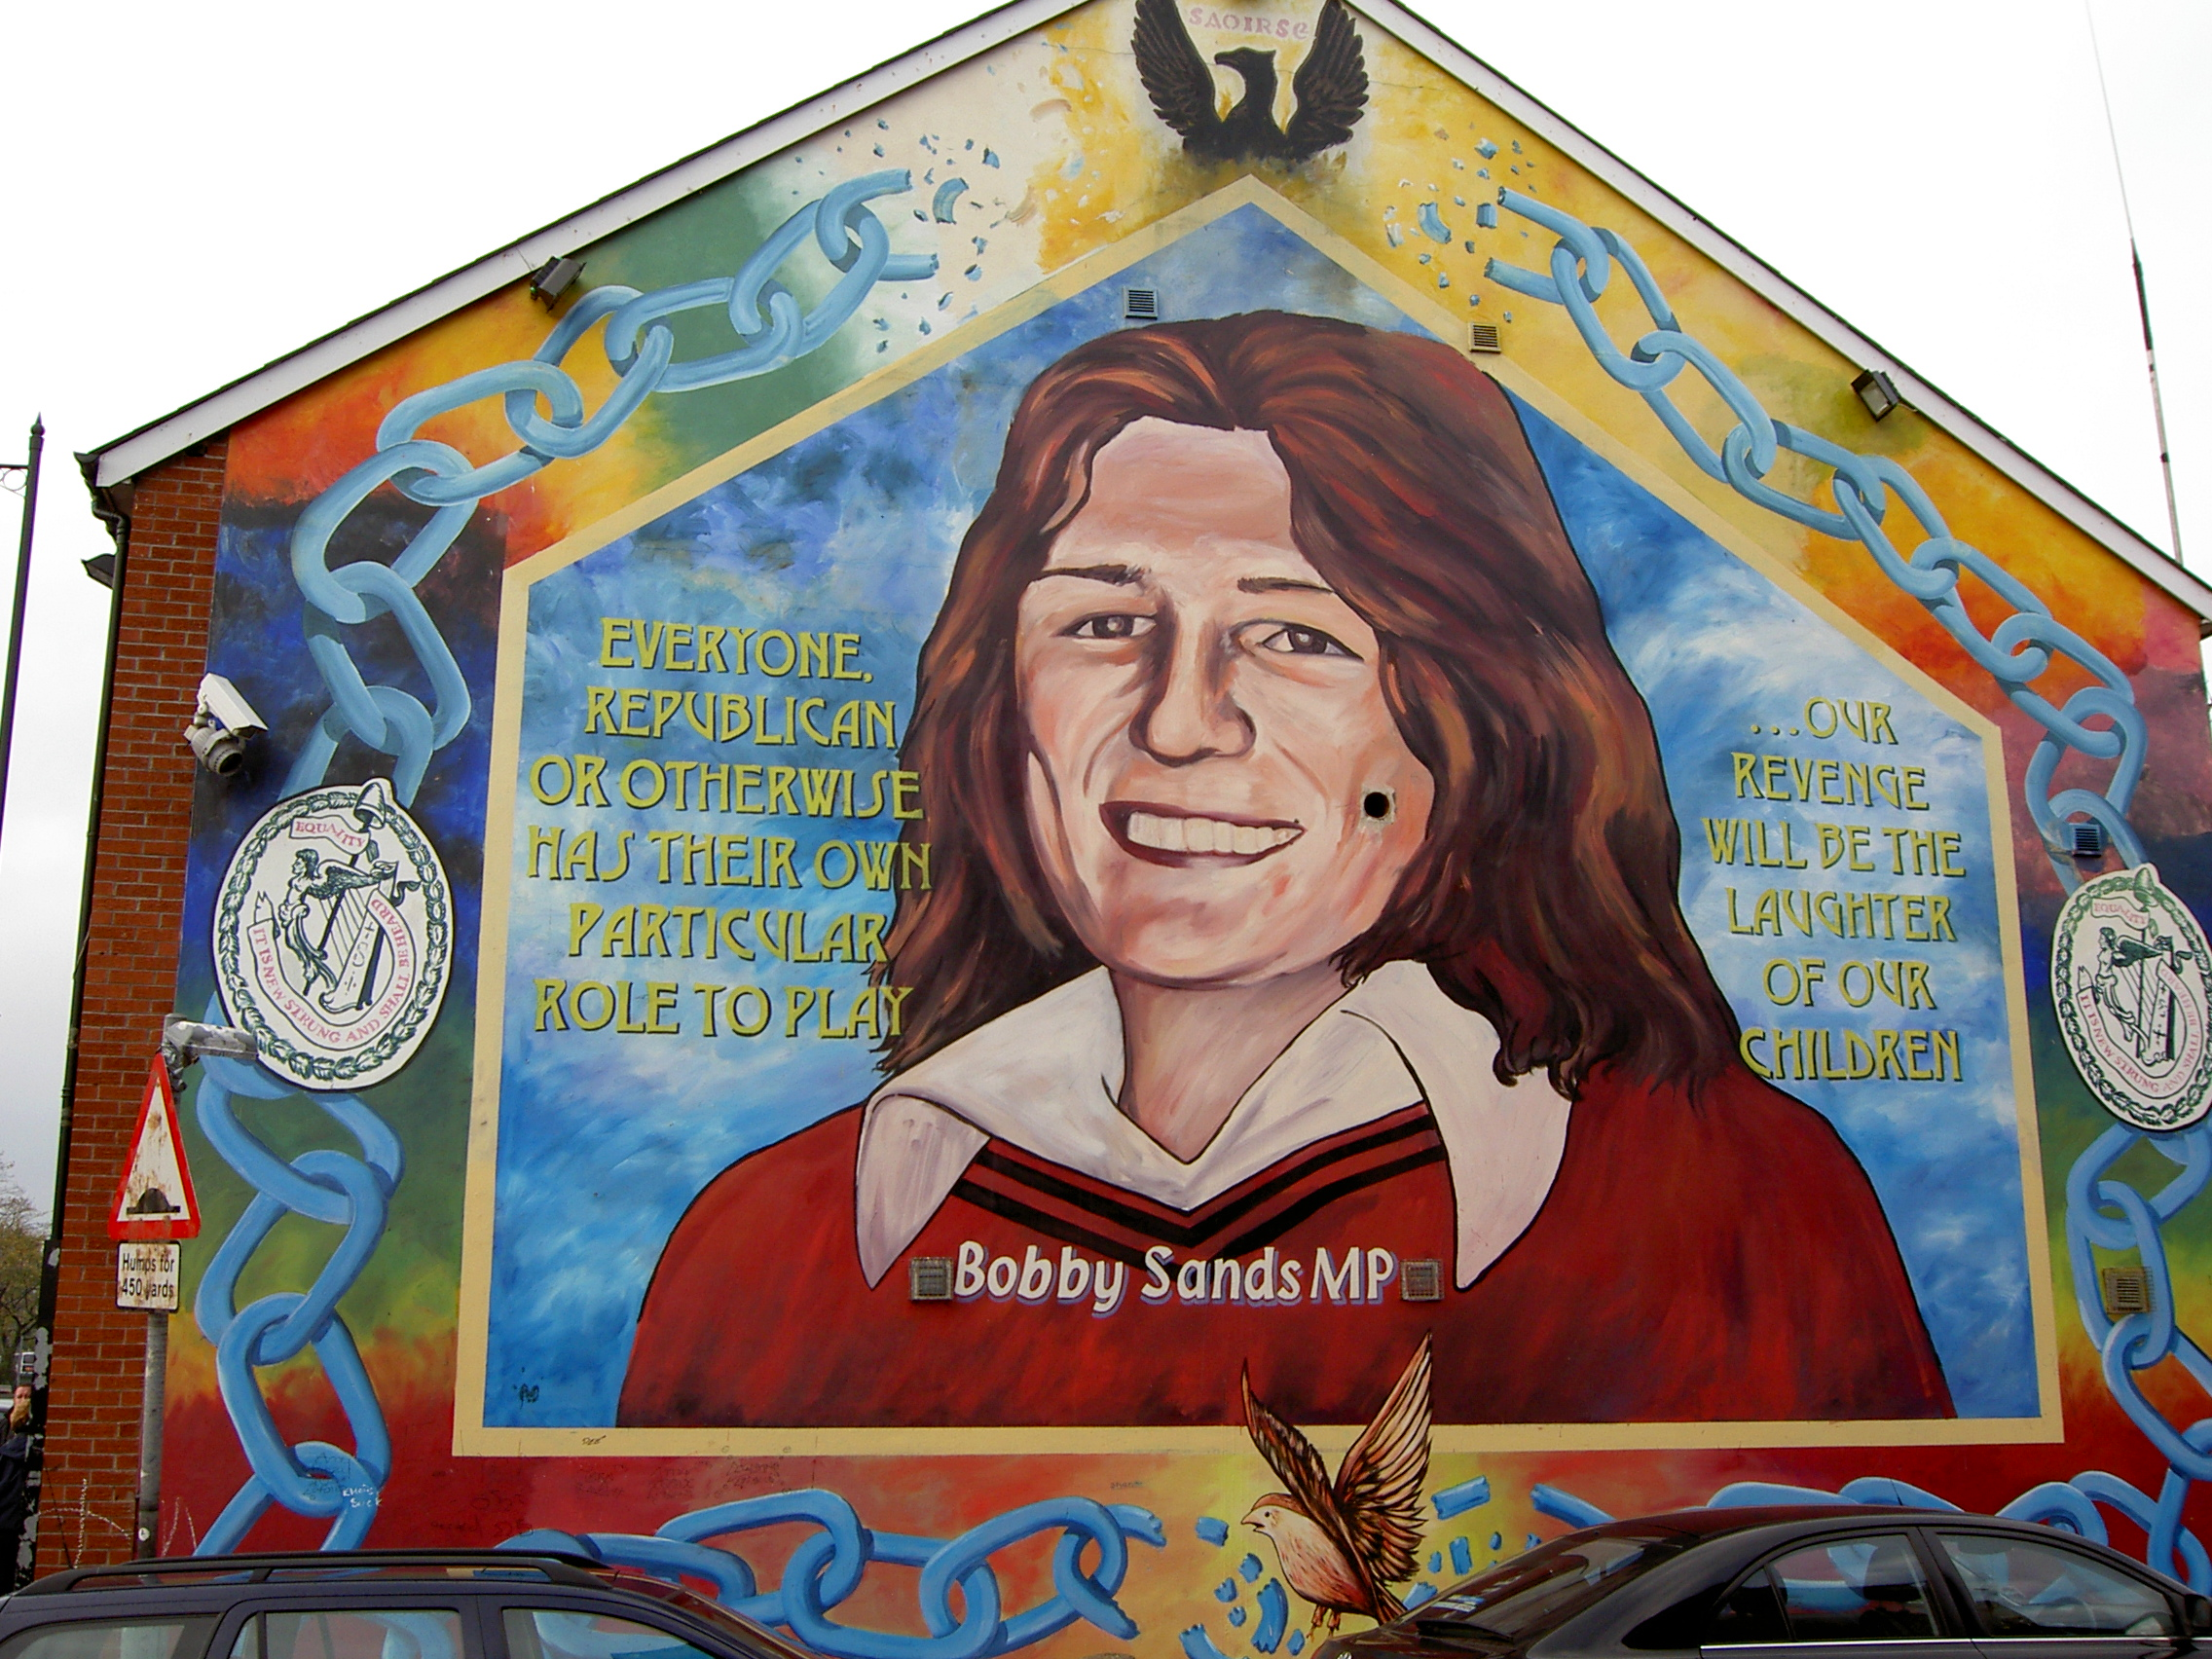 bobby sands the legal satyricon